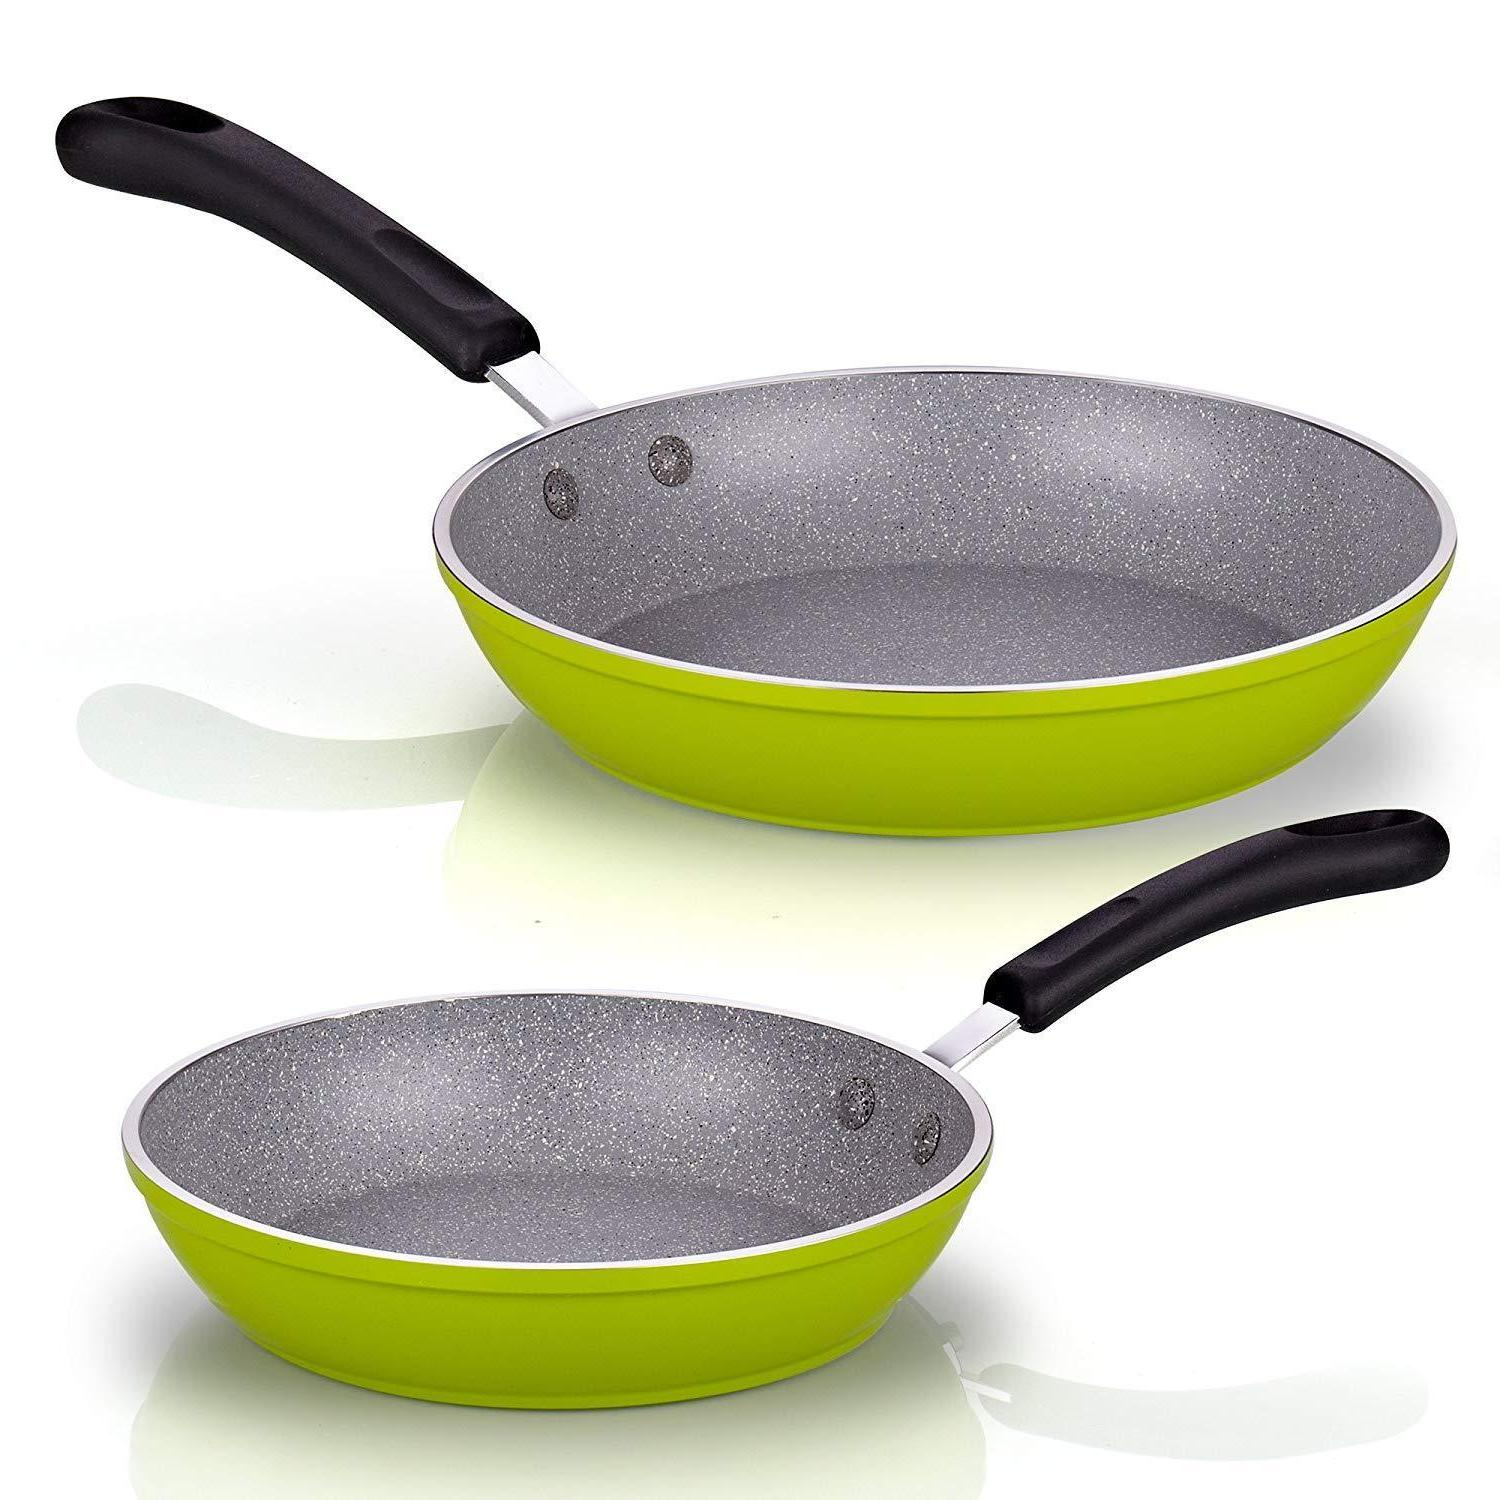 Cook Home and Nonstick Gauge Skillet